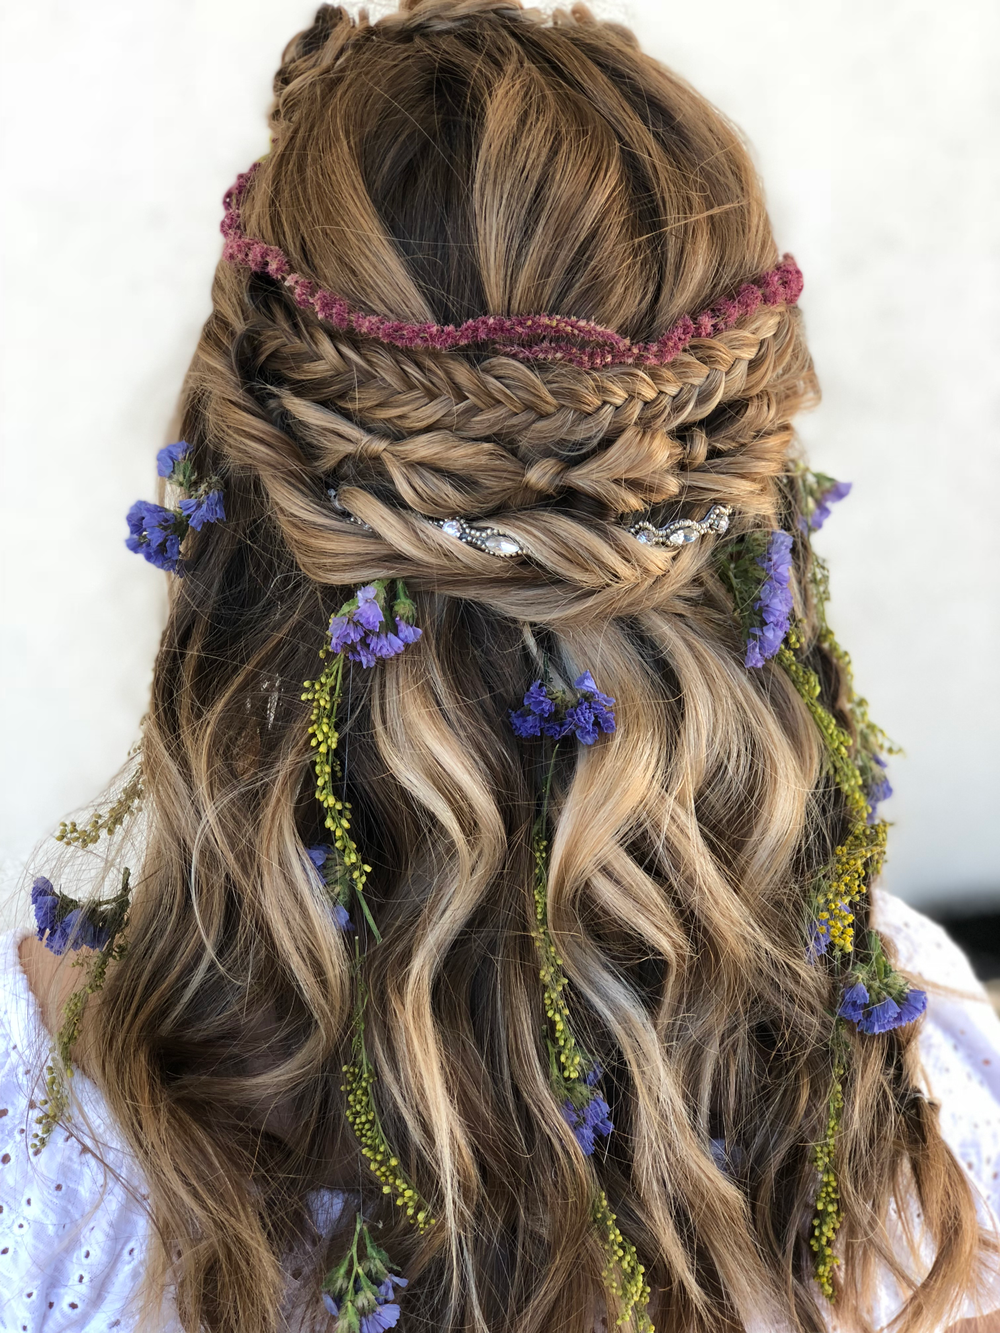 <p>Heather Schmick @heatherhairandbridalstylist: This look started with a sun-kissed balayage. Schmick used scruples clay lightener + scruples power blonde with B3 and 30 vol-using a chip brush/seran wrap and no heat. The hair was toned with Redken Shades EQ 8V/9GI and few drops of 9NA + clear then blow dried with round brush. The styling began with curling the hair in boho waves. To create the knots she made 3 flower braids, and for the bandana part she made a fish tail braid, a topsy braid with the rubber bands covered and twists that are twisted around a pink pewter hair band. To complete the look I finished it with a 3 strand braid and flowers to create a dream catcher effect and a flower crown. </p>